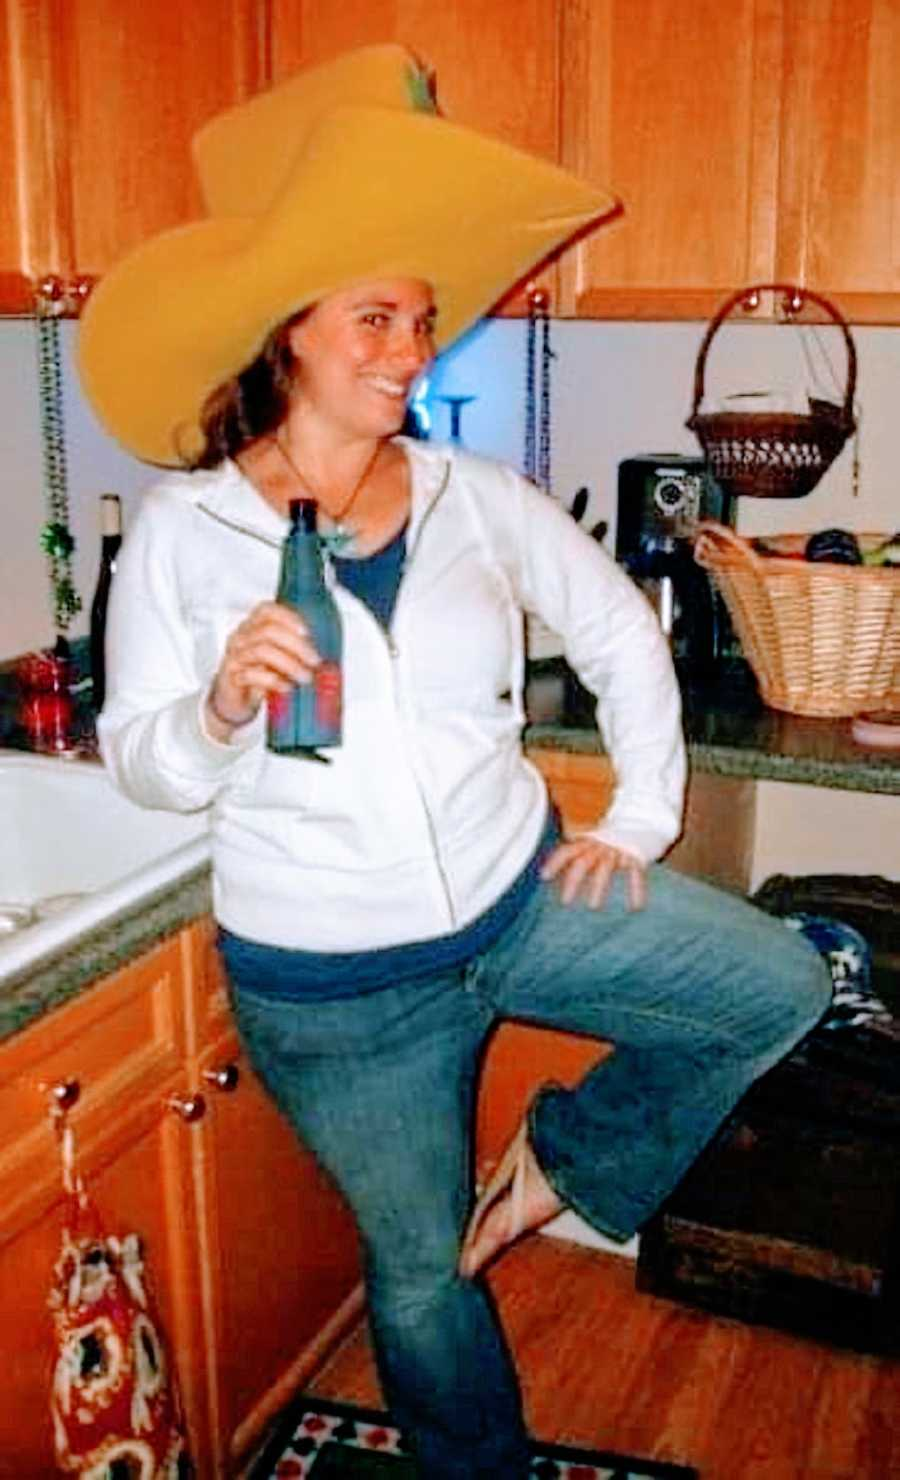 A woman wearing a giant cowboy hat stands on one foot while holding a beer